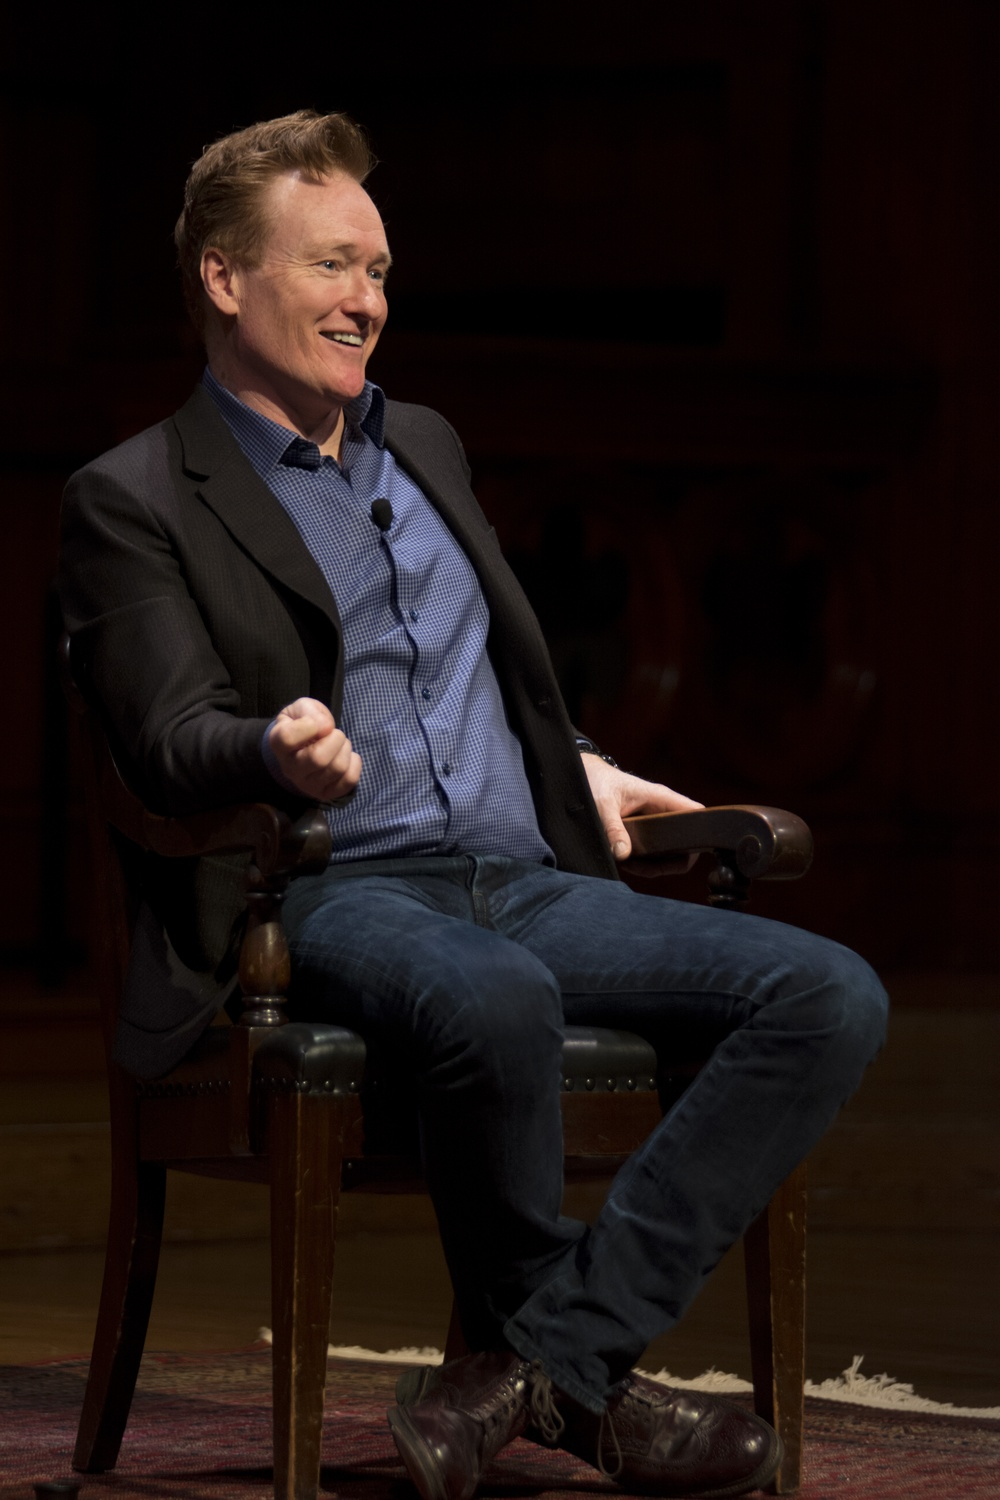 Conan O'Brien '85 spoke with University President Drew G. Faust on Friday in Sanders Theatre, discussing the value of a liberal arts education and his experiences at Harvard.